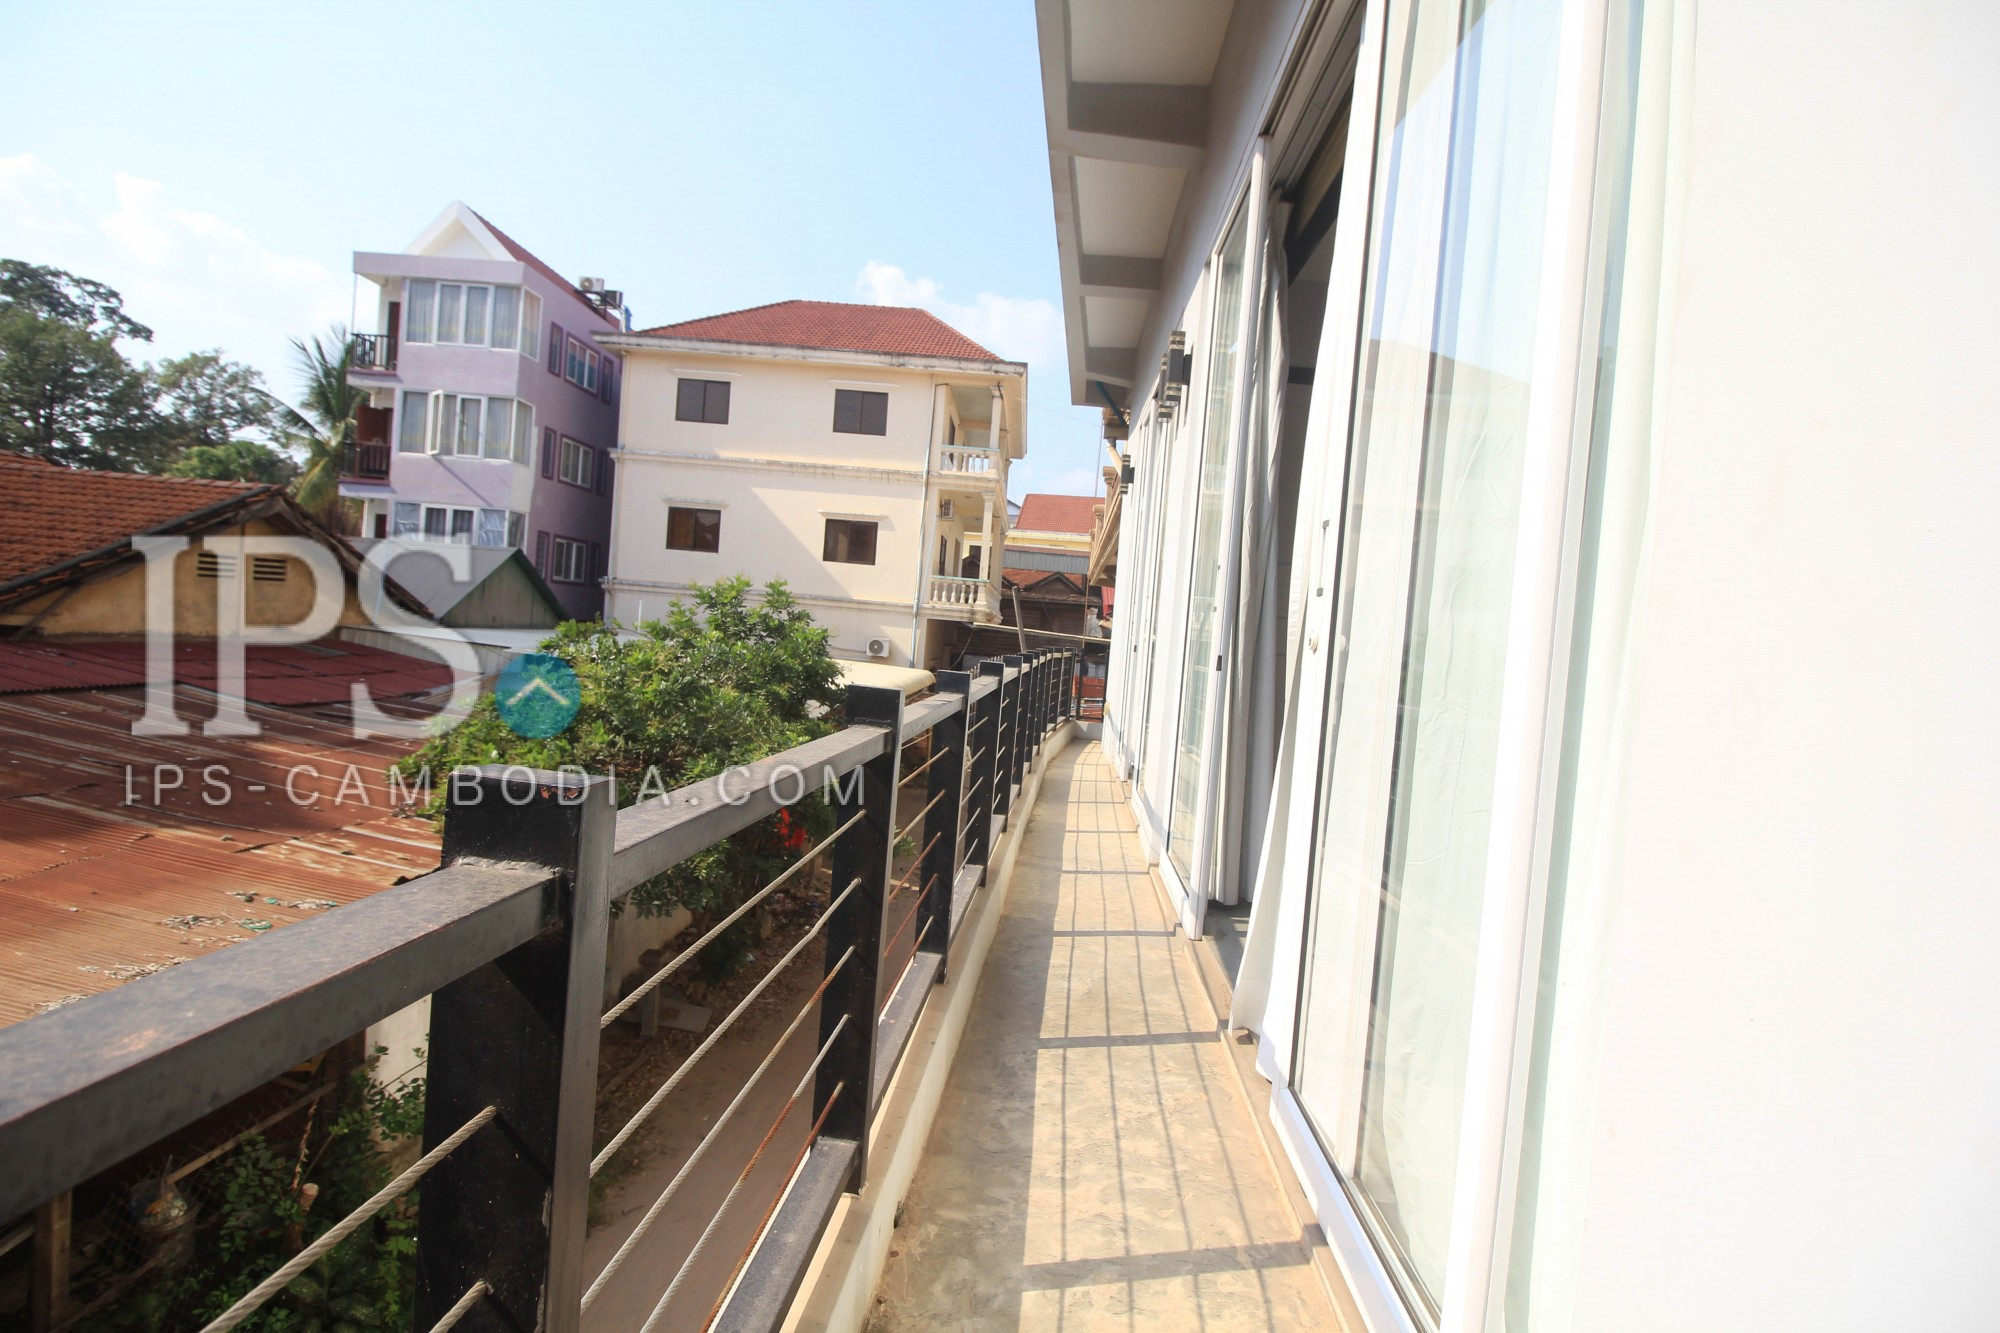 One Bedroom Apartment For Rent - Wat bo - Siem Reap